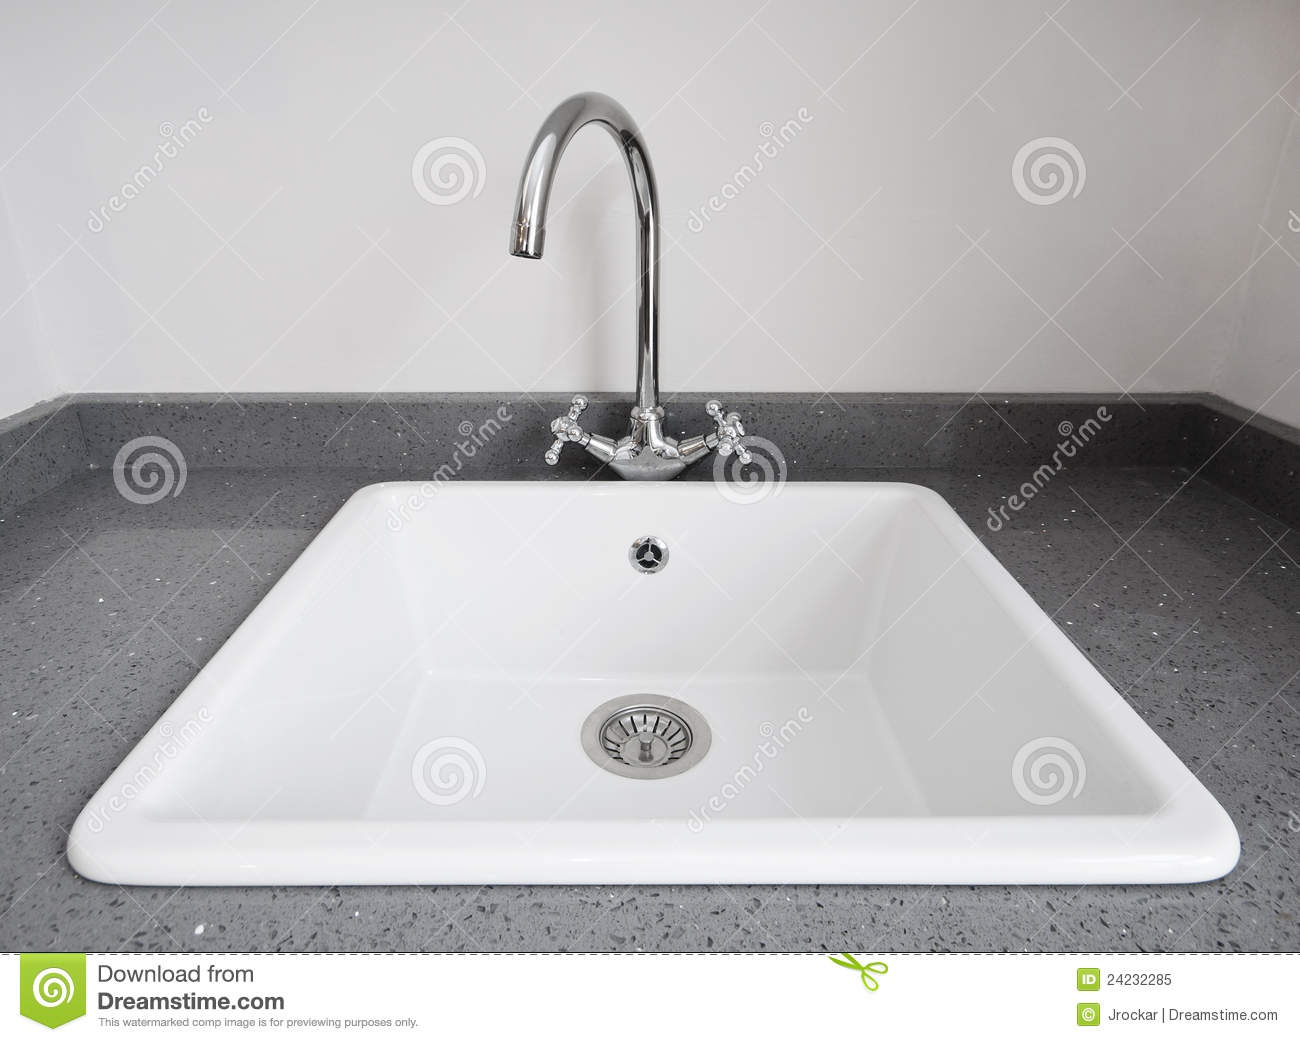 Retro Kitchen Sink Stock Image Image Of Stainless